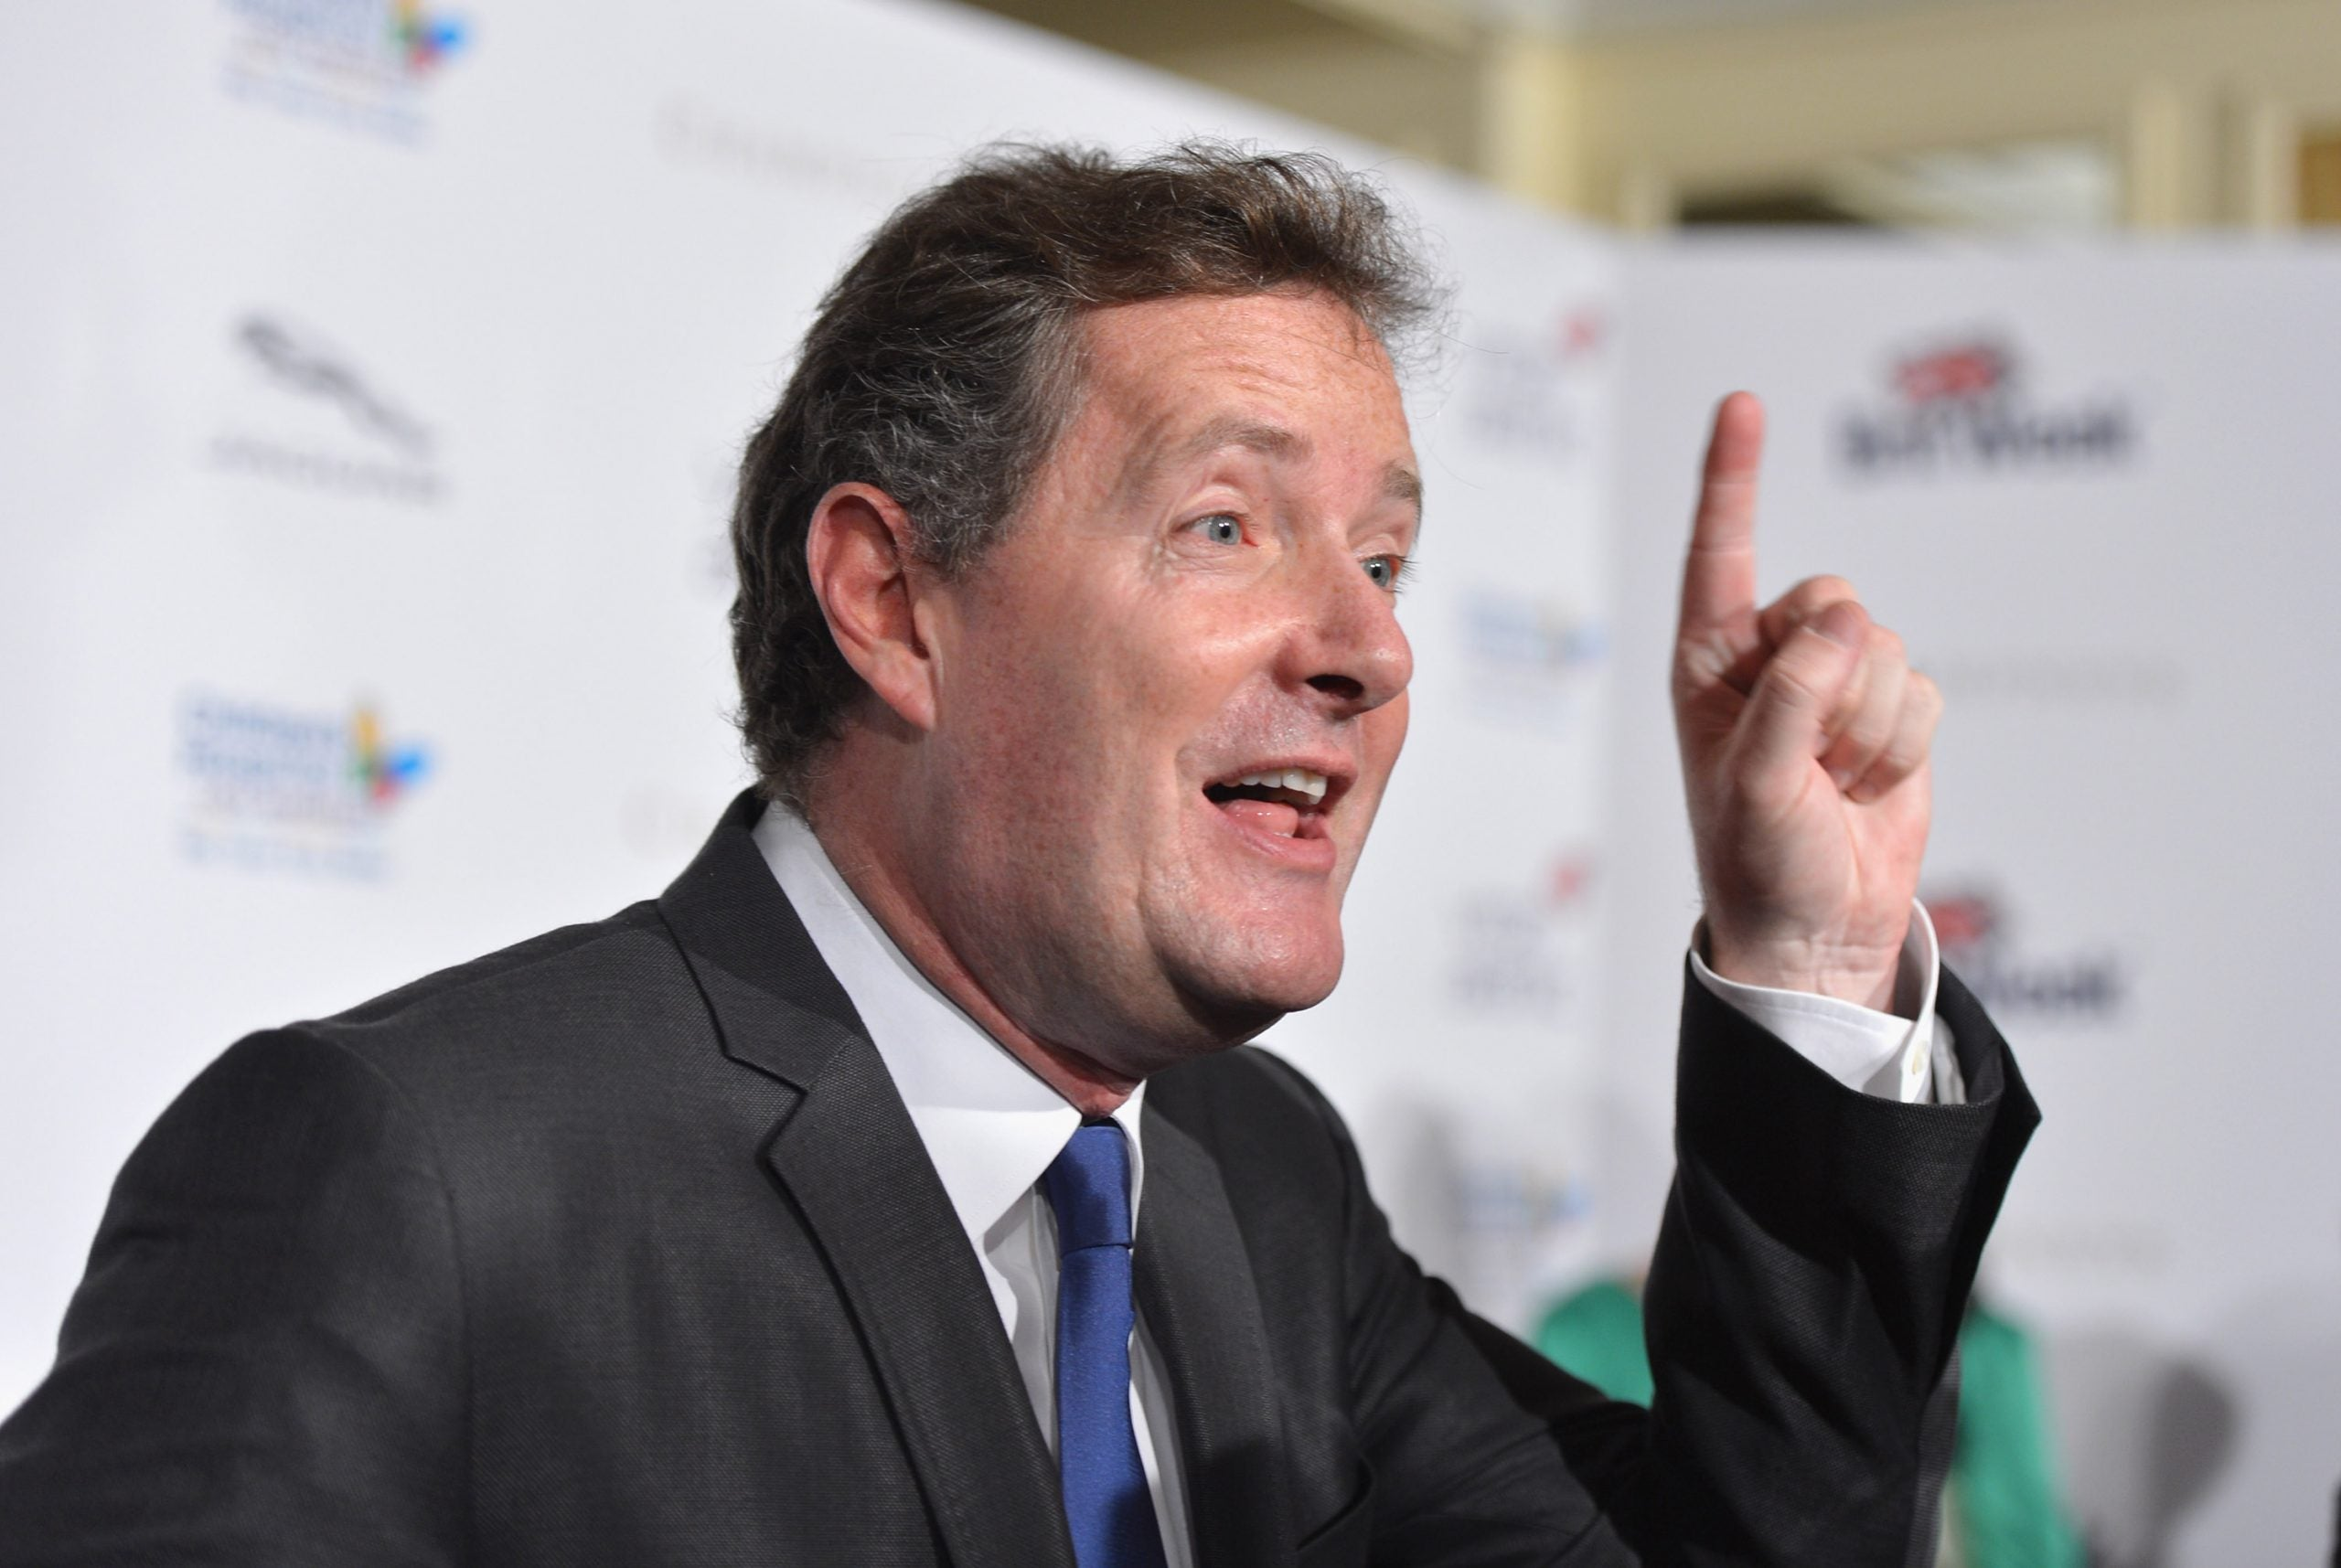 Piers Morgan shows why a celebrity journalist is a terrible thing